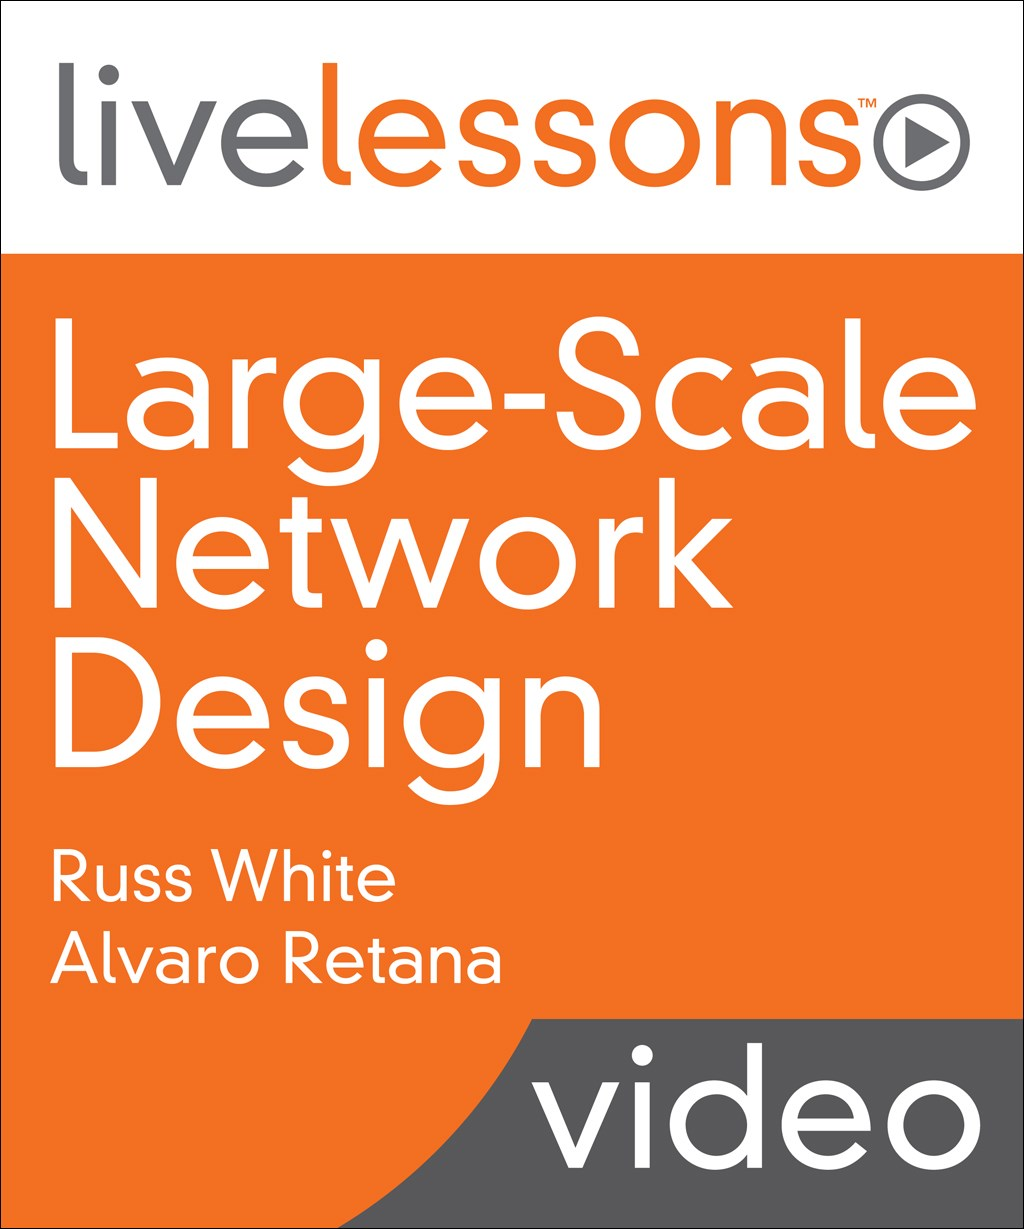 Large-Scale Network Design LiveLessons: Best Practices for Designing Elegant, Scalable, and Programmable Networks with OSPF, EIGRP, IS-IS, and BGP Routing Protocols